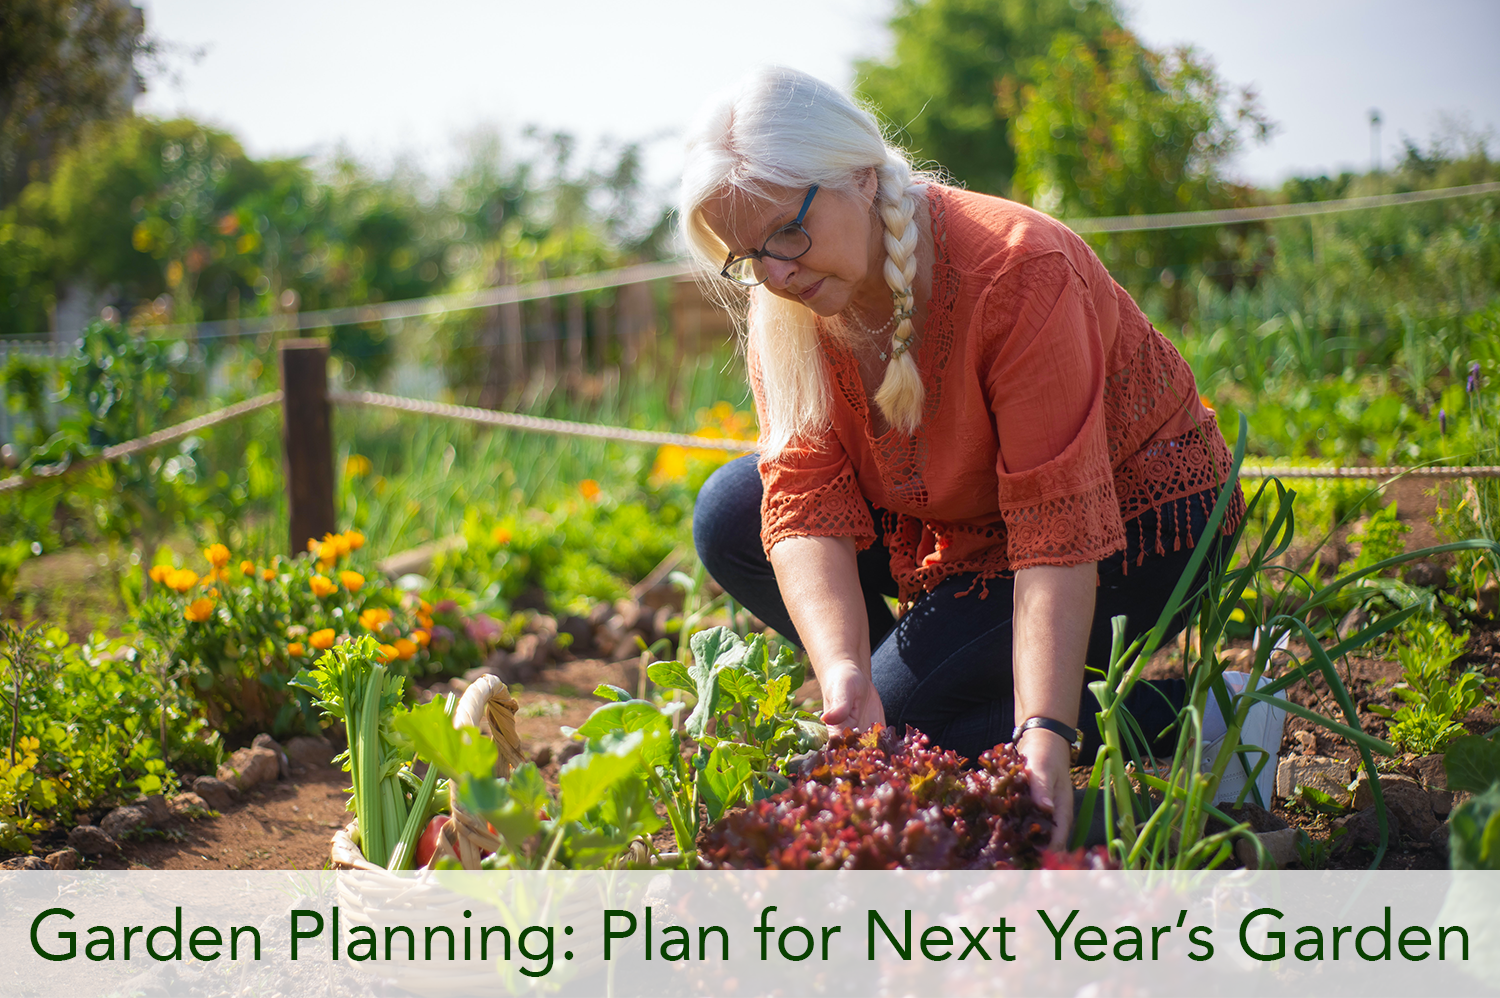 A woman gathering vegetables from her garden, noting which ones worked well for garden planning purposes.